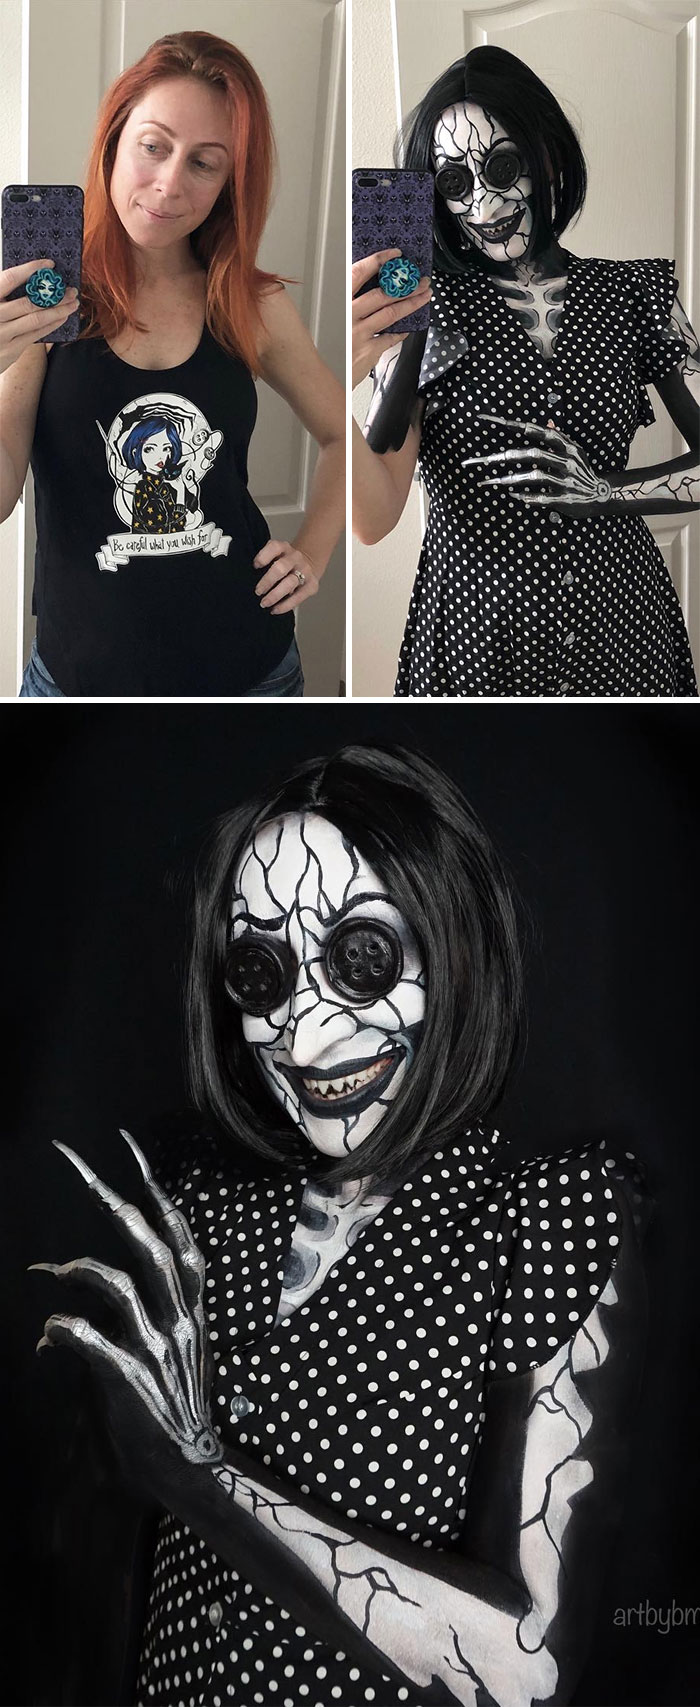 brenna mazzoni epic cosplay transformations beldam